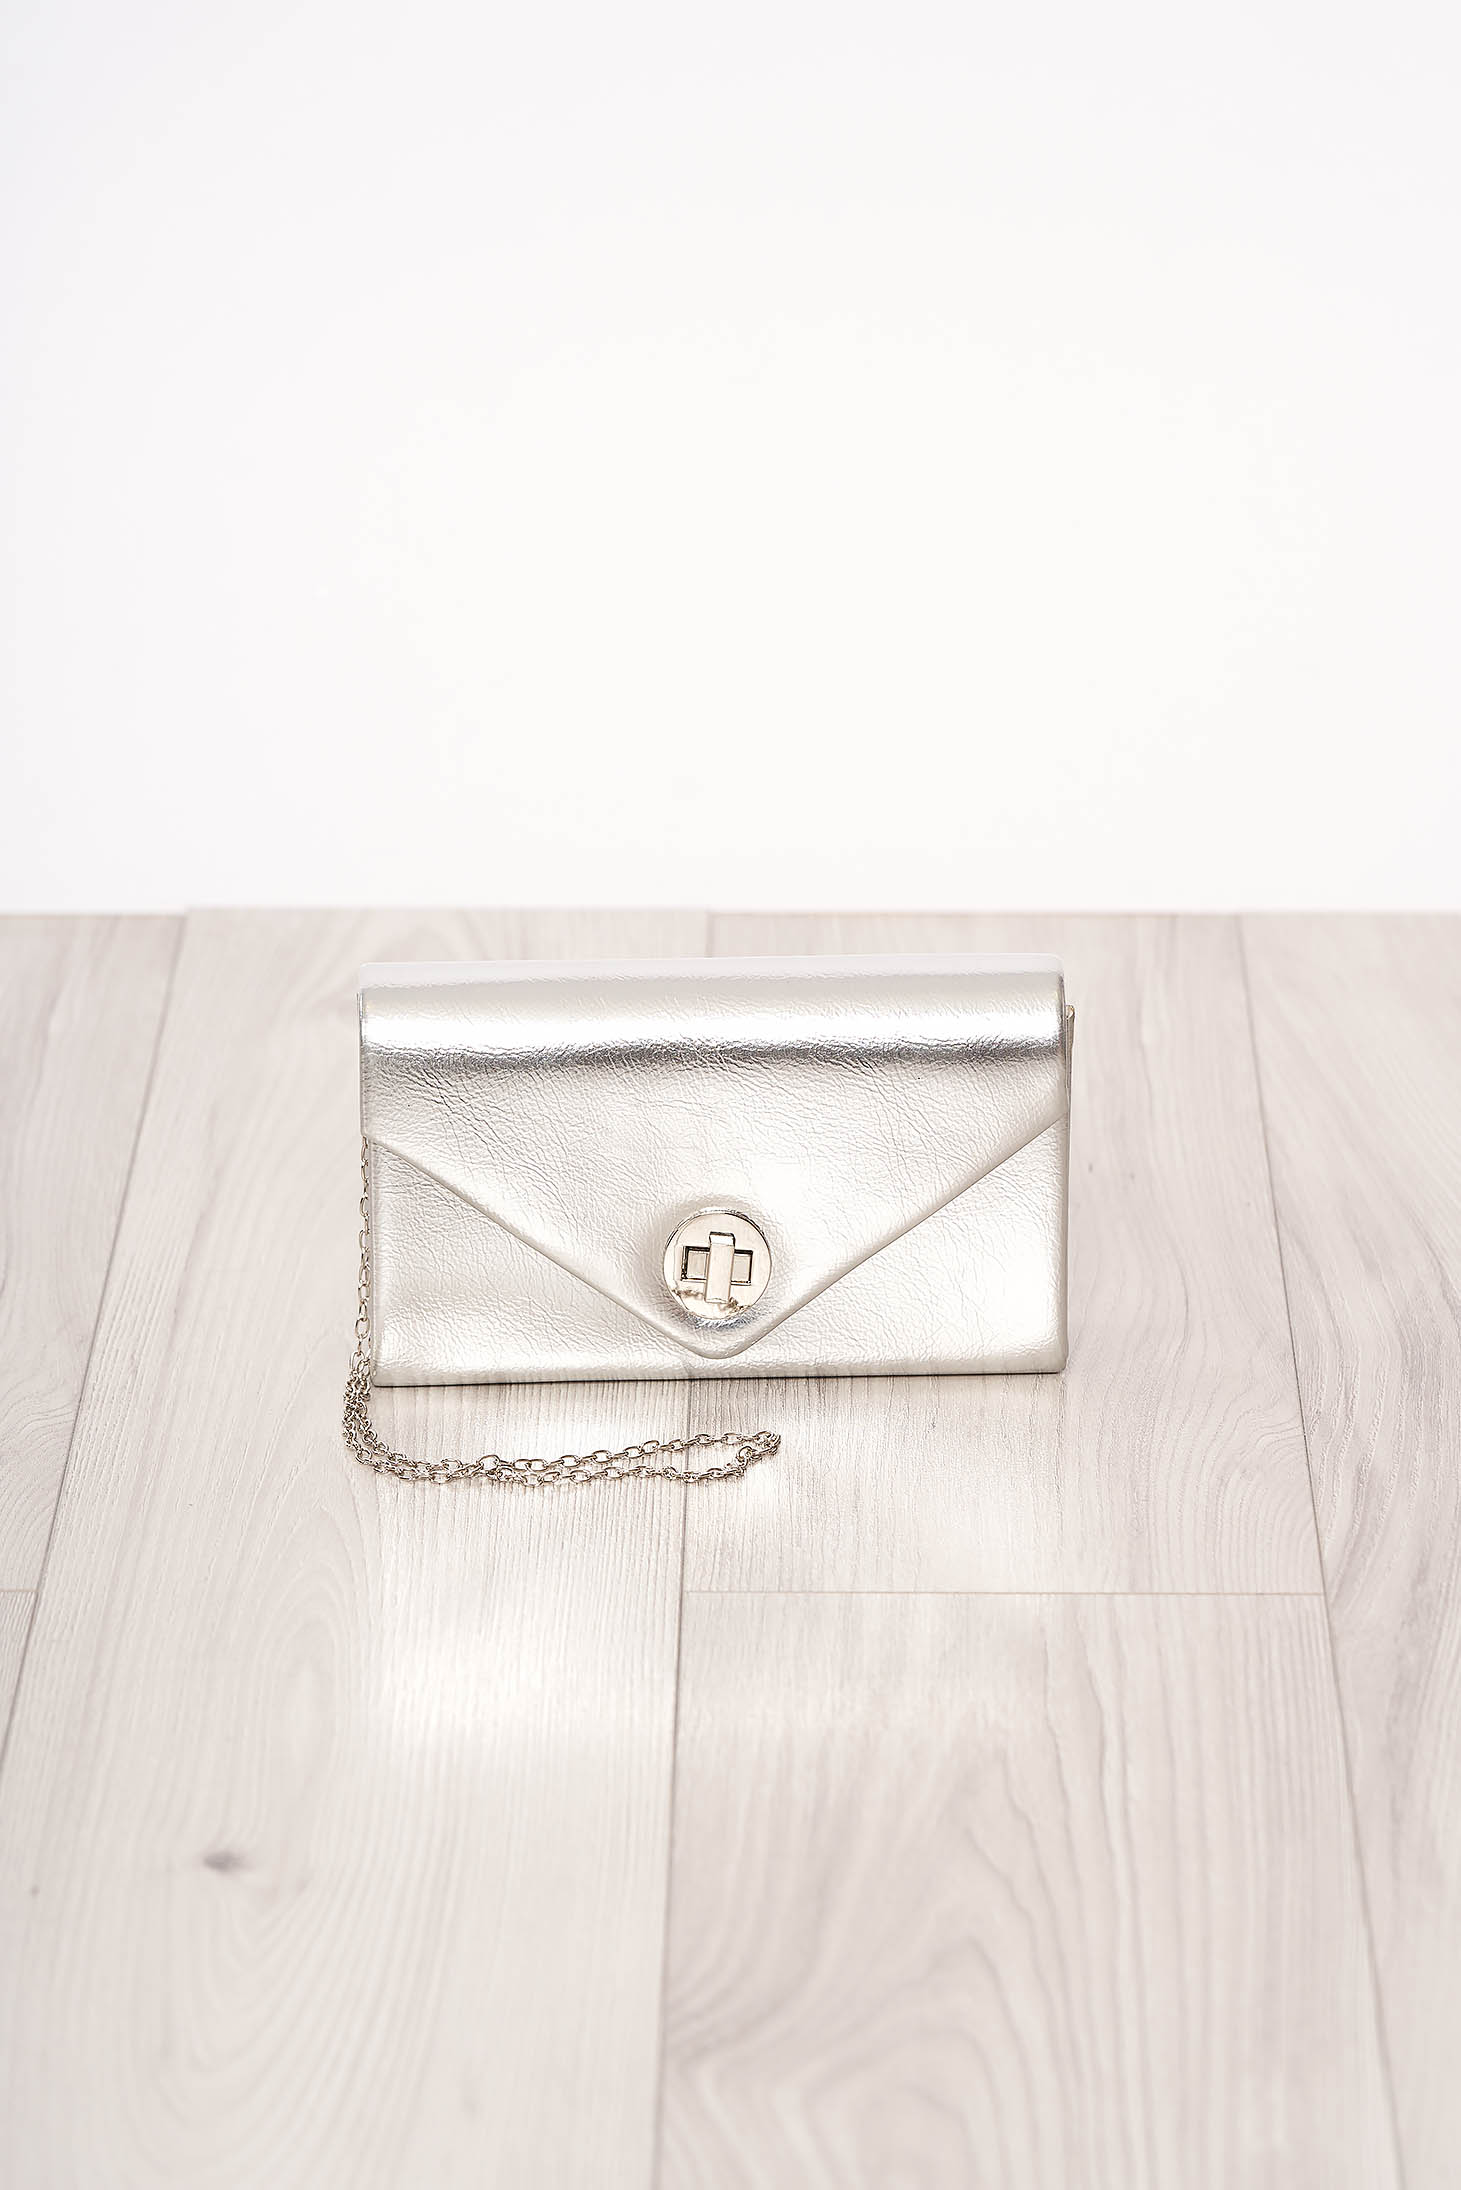 Bag silver long chain handle allure of satin buckle accessory ecological leather occasional